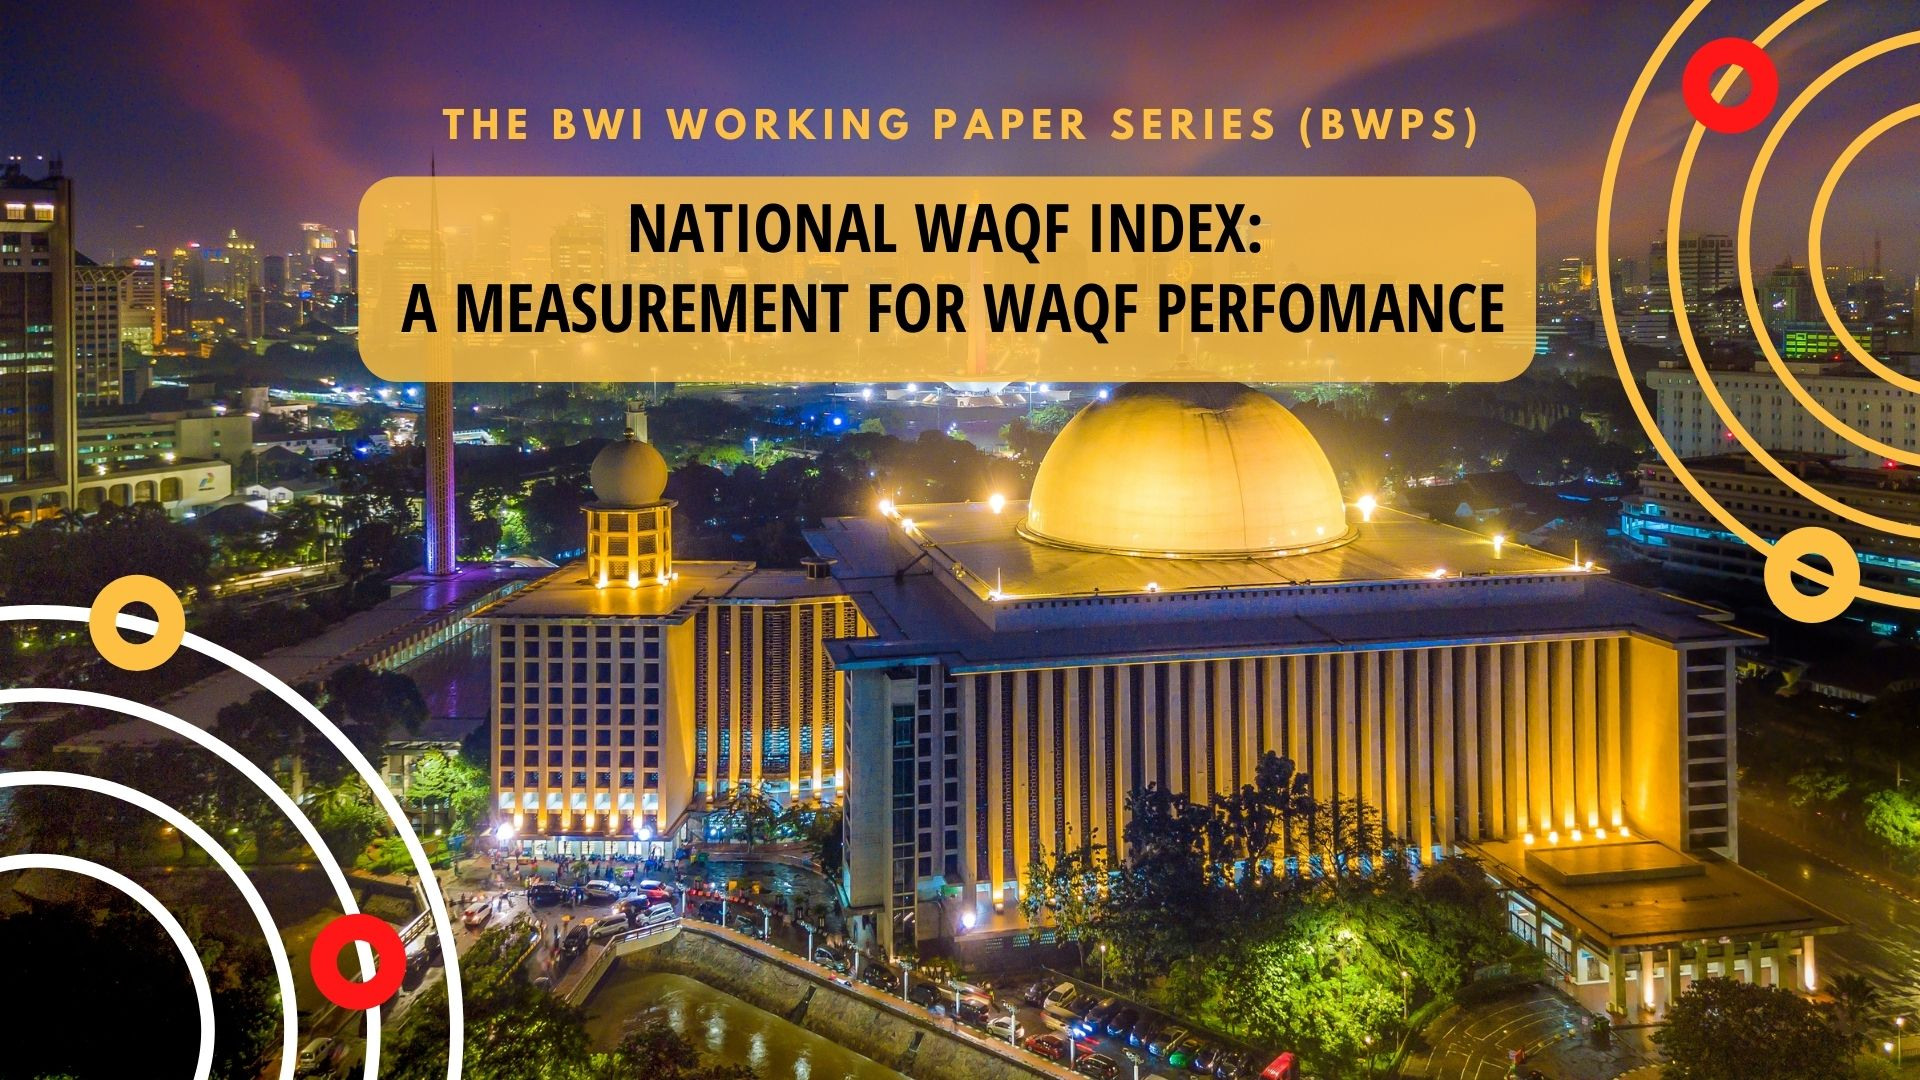 National Waqf Index: A Measurement for Waqf Perfomance – BWPS No. 1 2021  - Seri 1 The BWI Working Paper Series BWPS - National Waqf Index: A Measurement for Waqf Perfomance – BWPS No. 1 2021